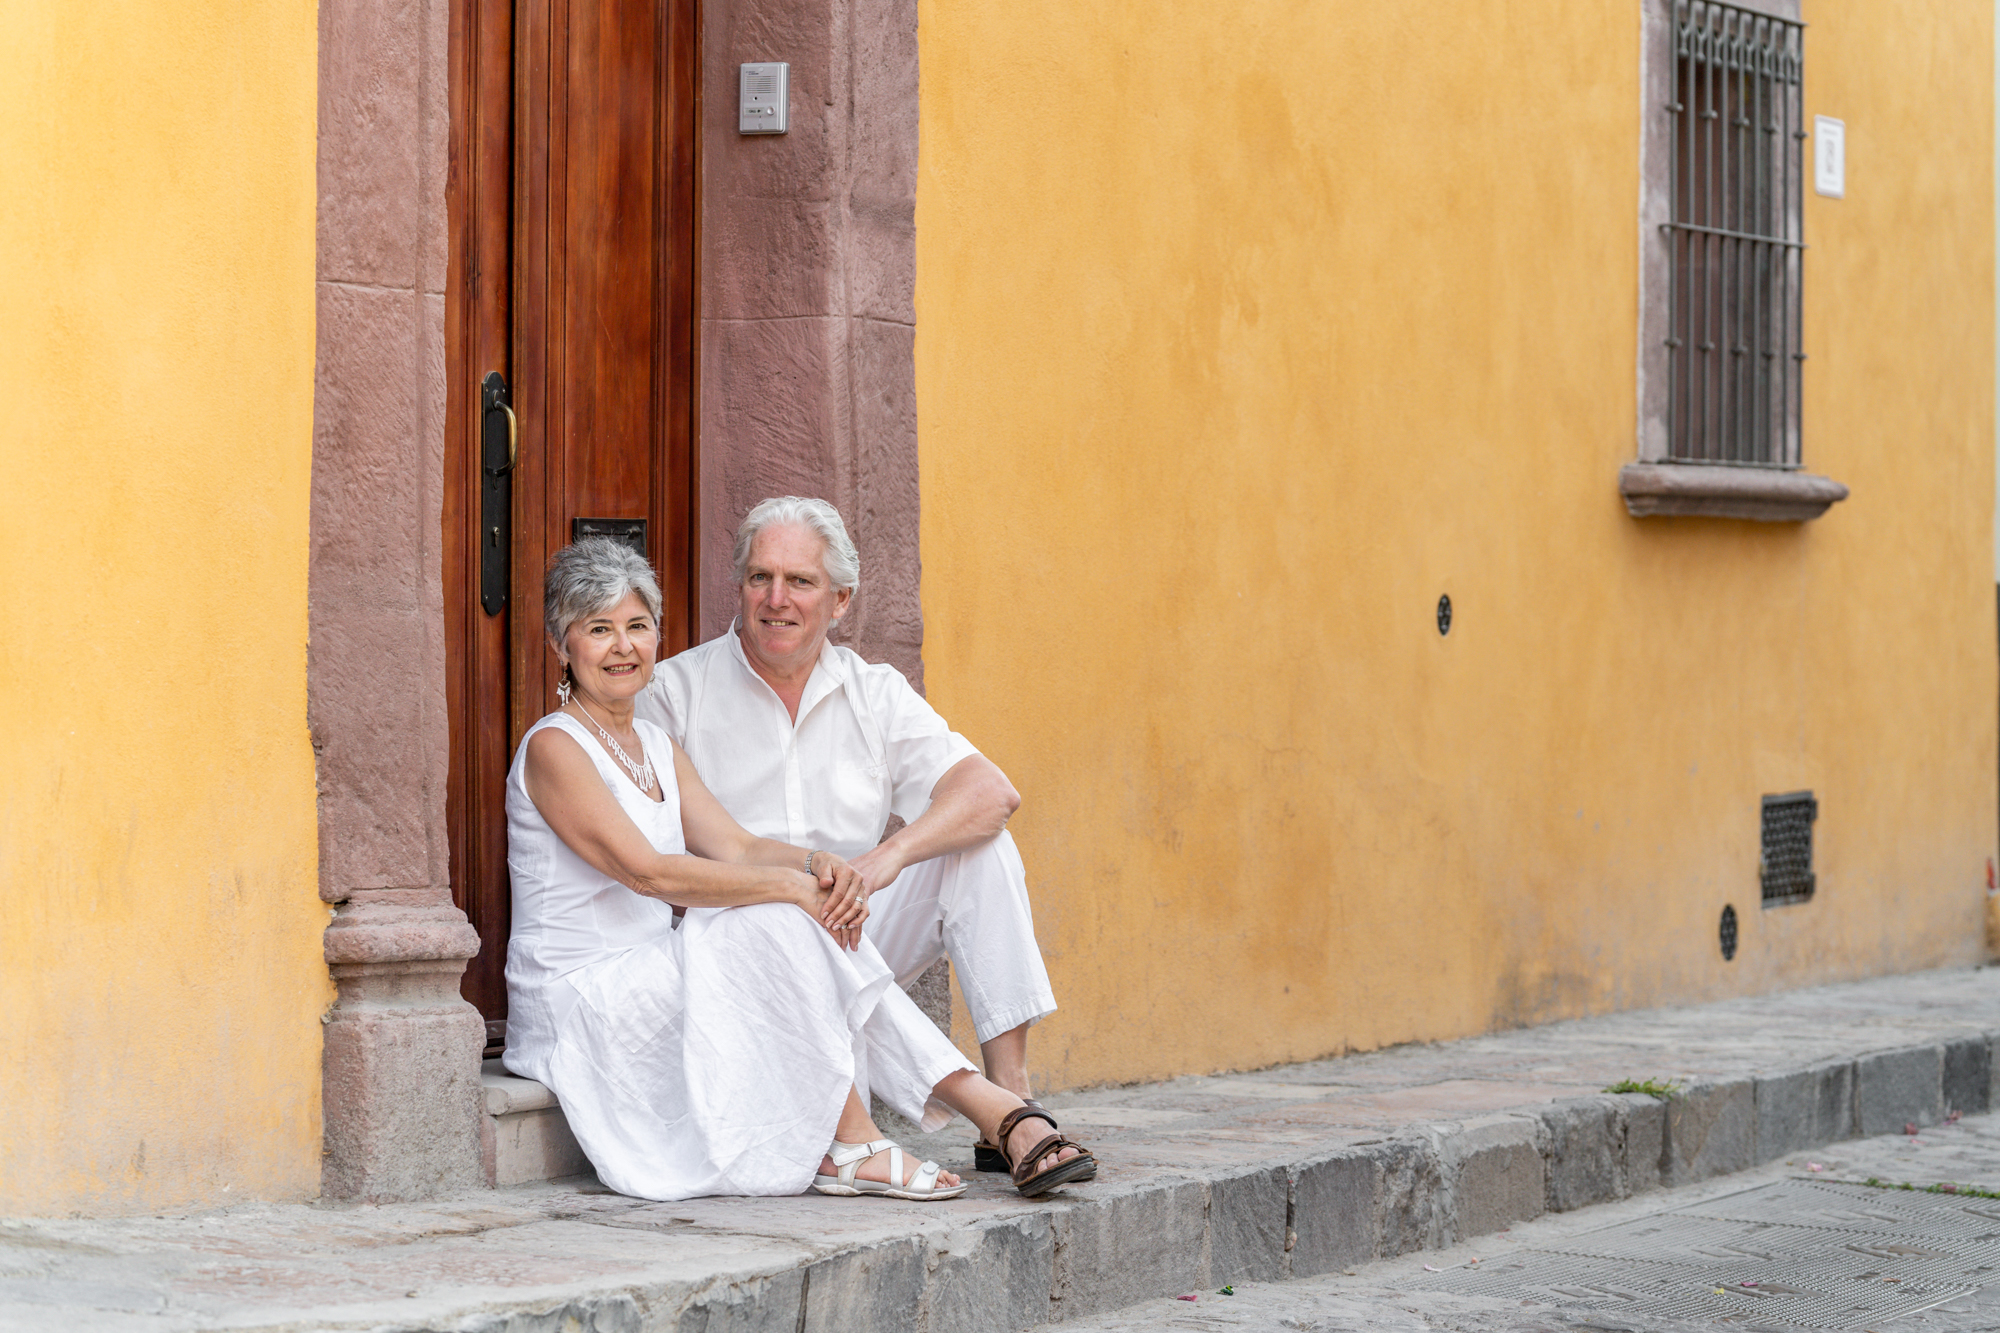 Photoshoot session in San Miguel de Allende with Suzanne and Leo-52.jpg